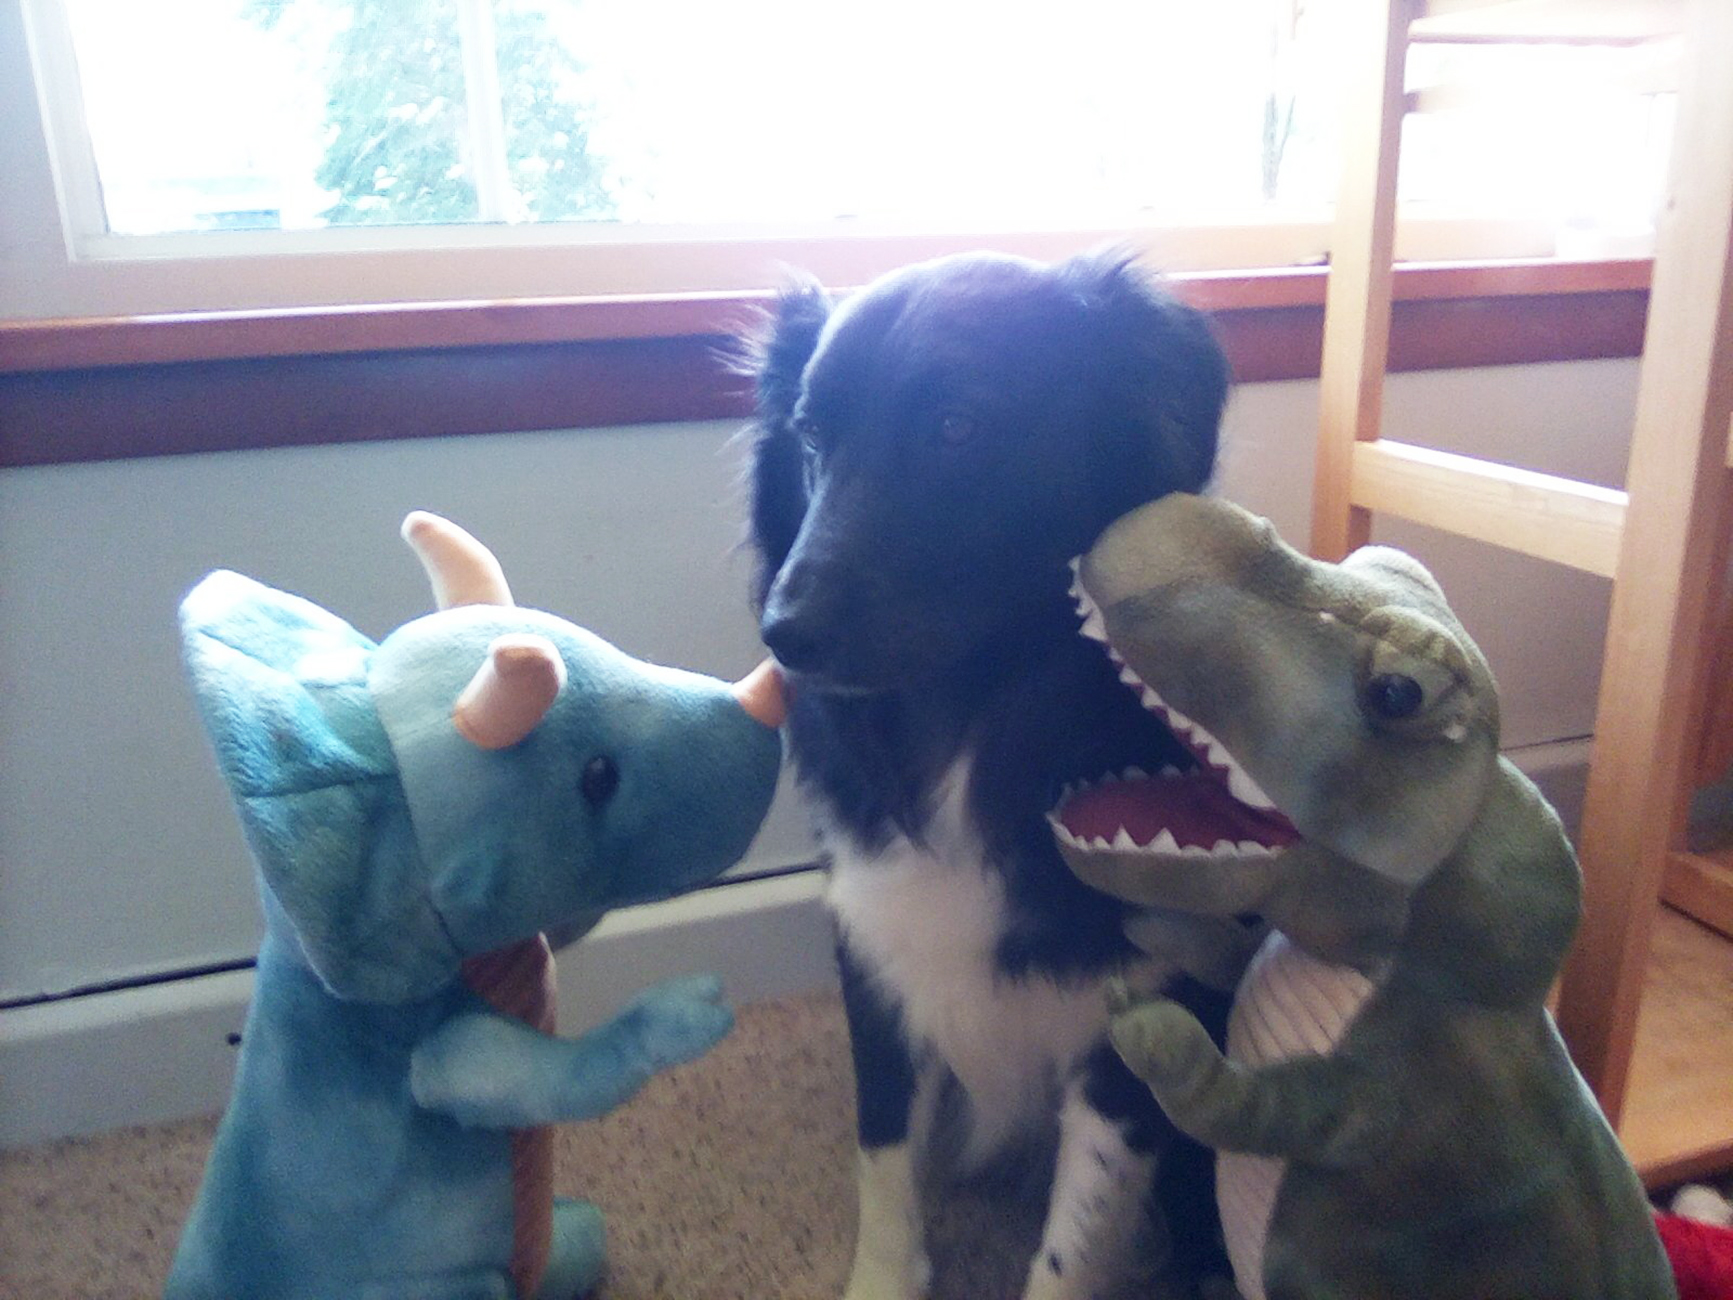 Fluffy black and white dog pictured sitting in between two dinosaur stuffed animals